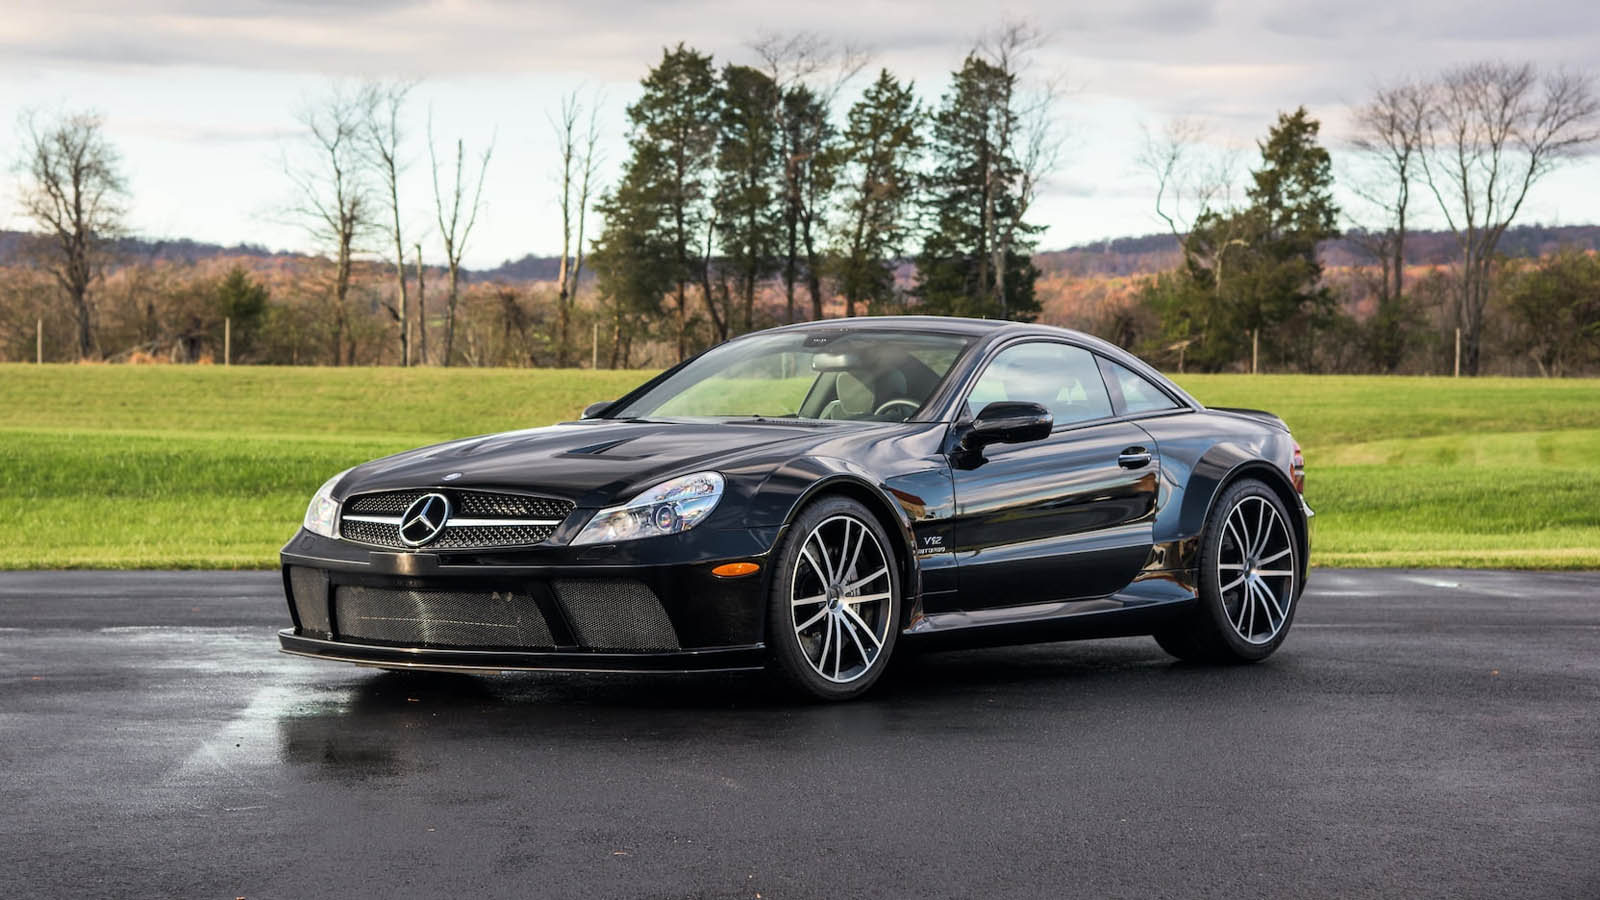 mercedes amg black series collection for sale in florida autoevolution. Black Bedroom Furniture Sets. Home Design Ideas